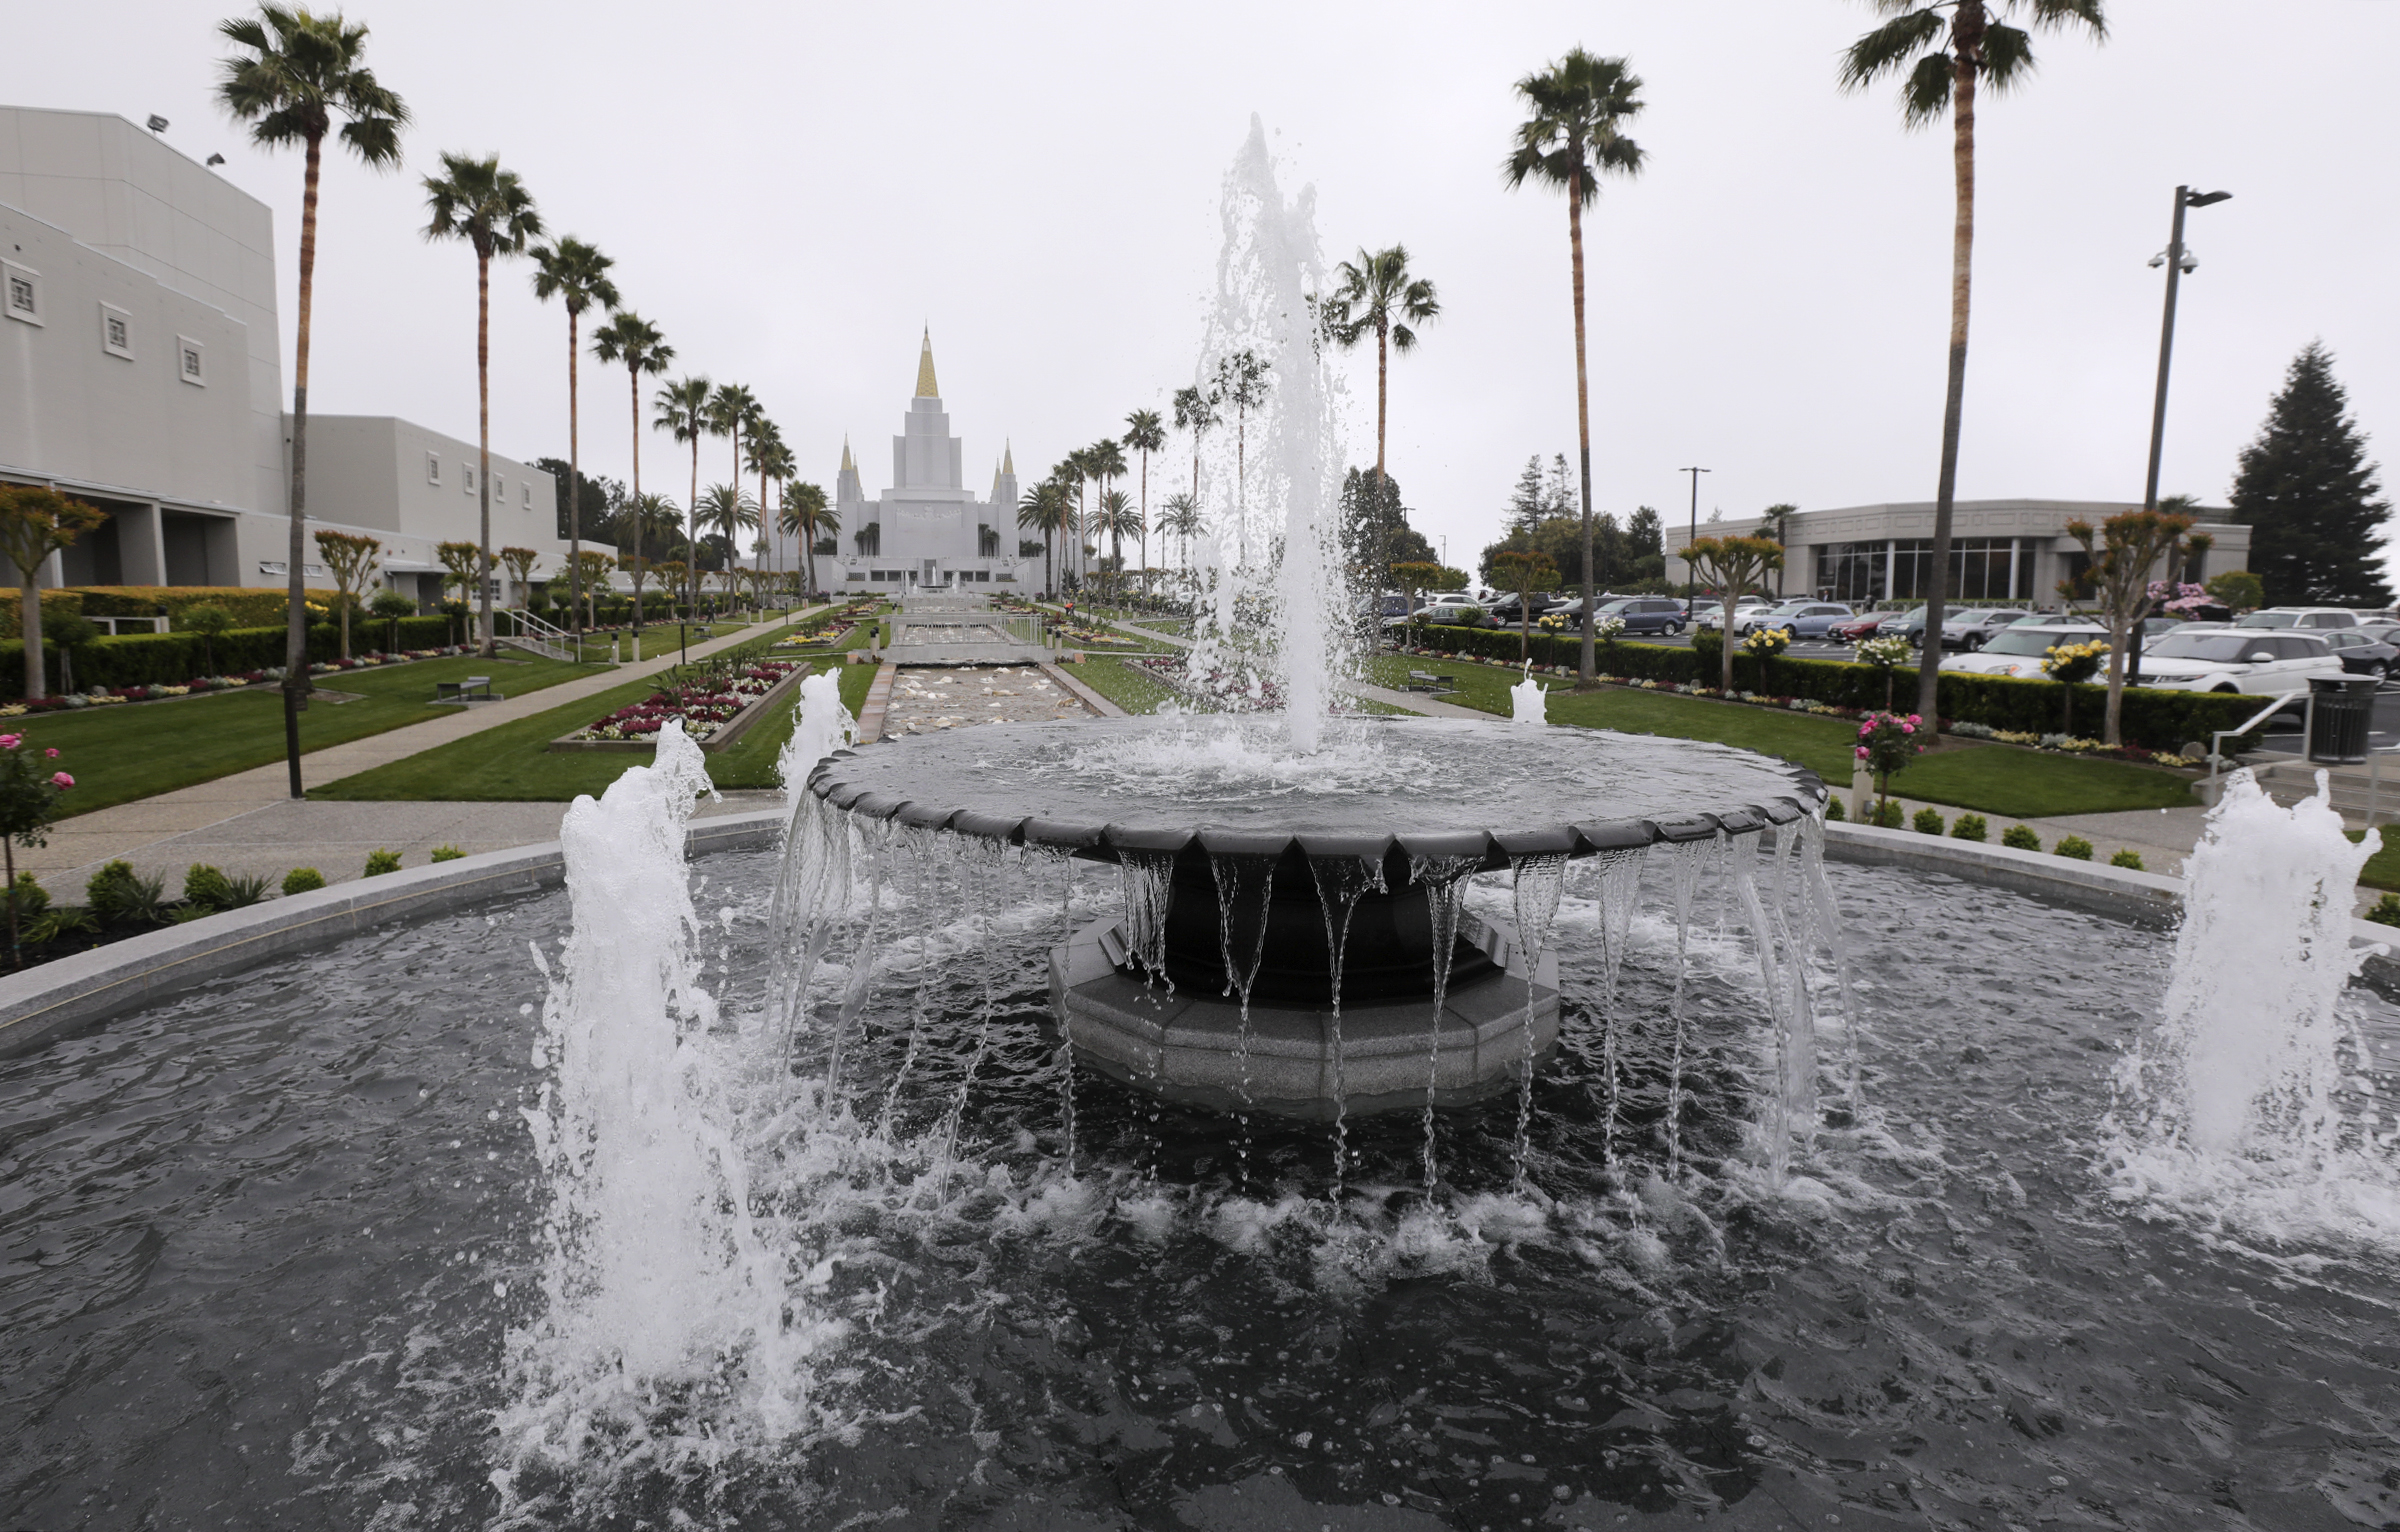 The fountains of the newly renovated Oakland California Temple, of The Church of Jesus Christ of Latter-day Saints, in Oakland, Calif., on Monday, May 6, 2019.